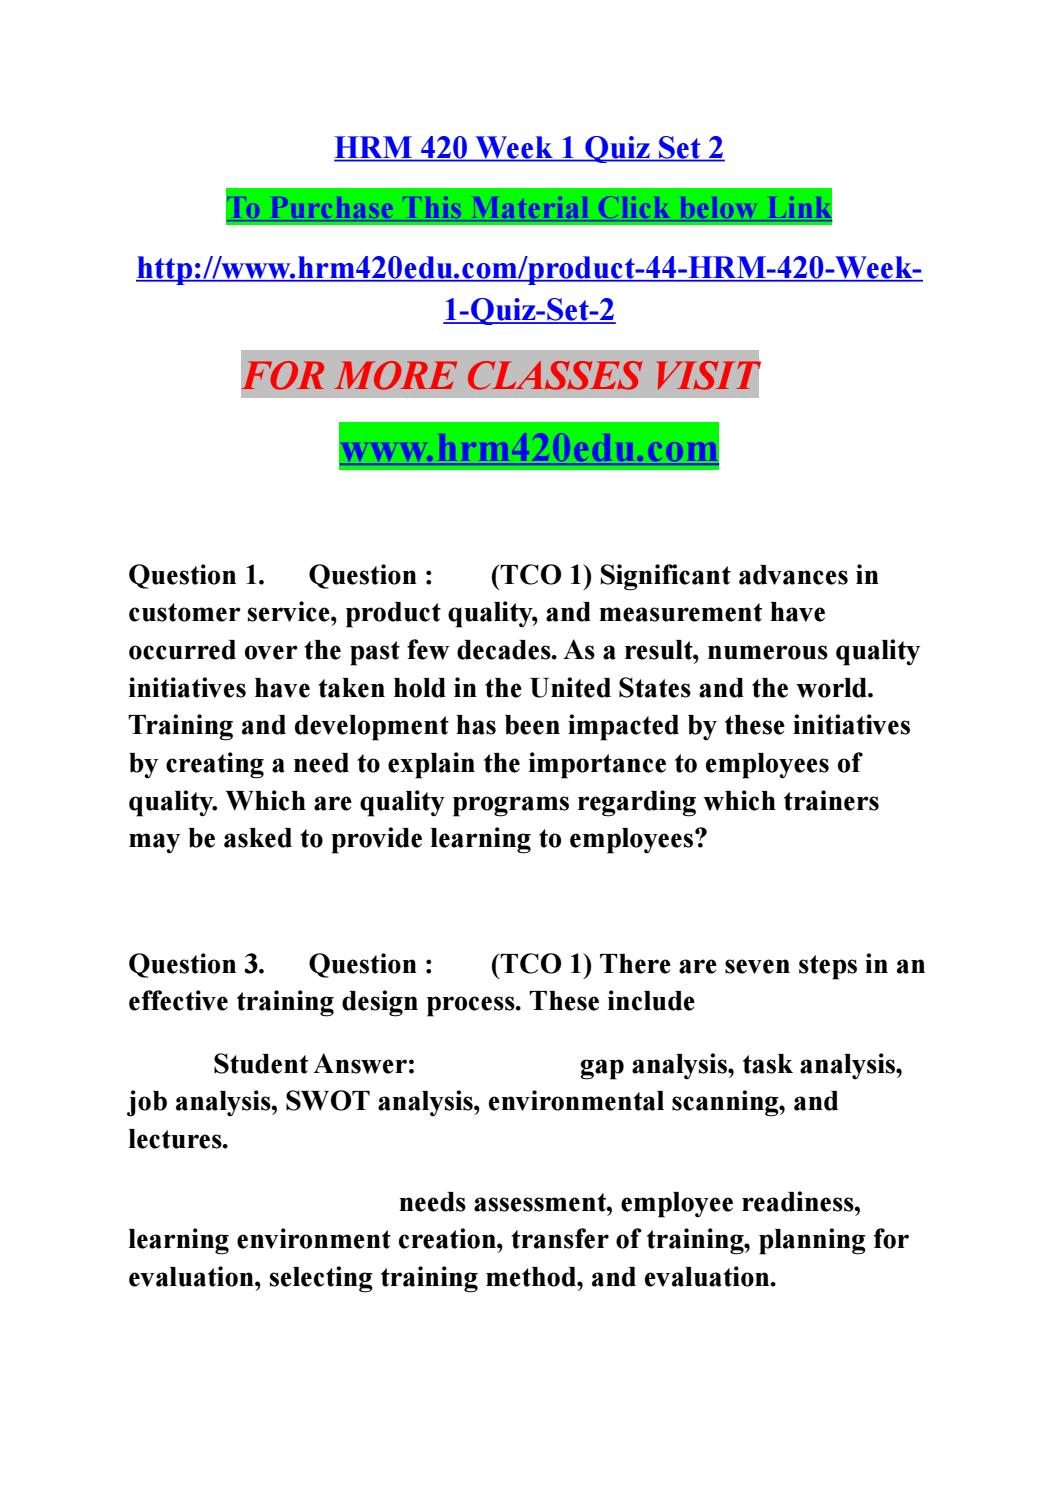 Hrm 420 week 1 quiz set 2 by fida2b - issuu